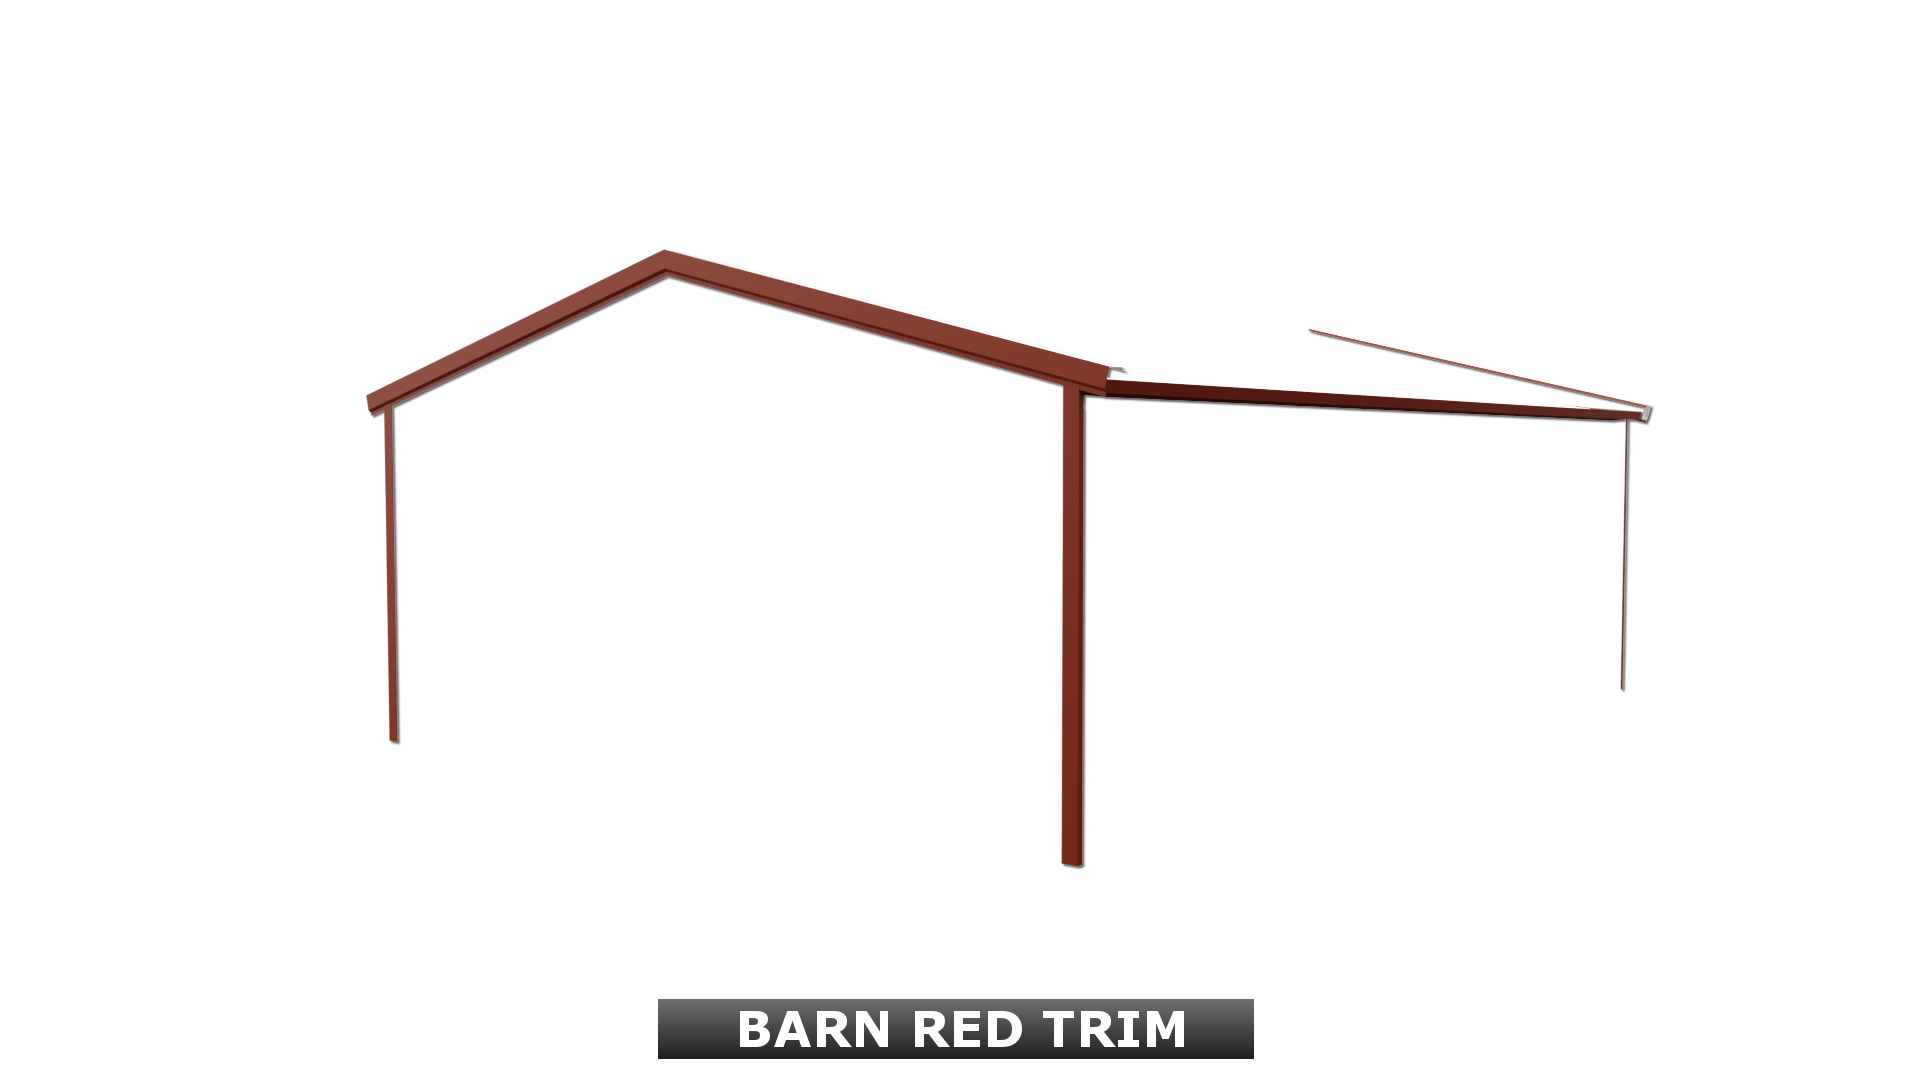 BARN RED TRIM